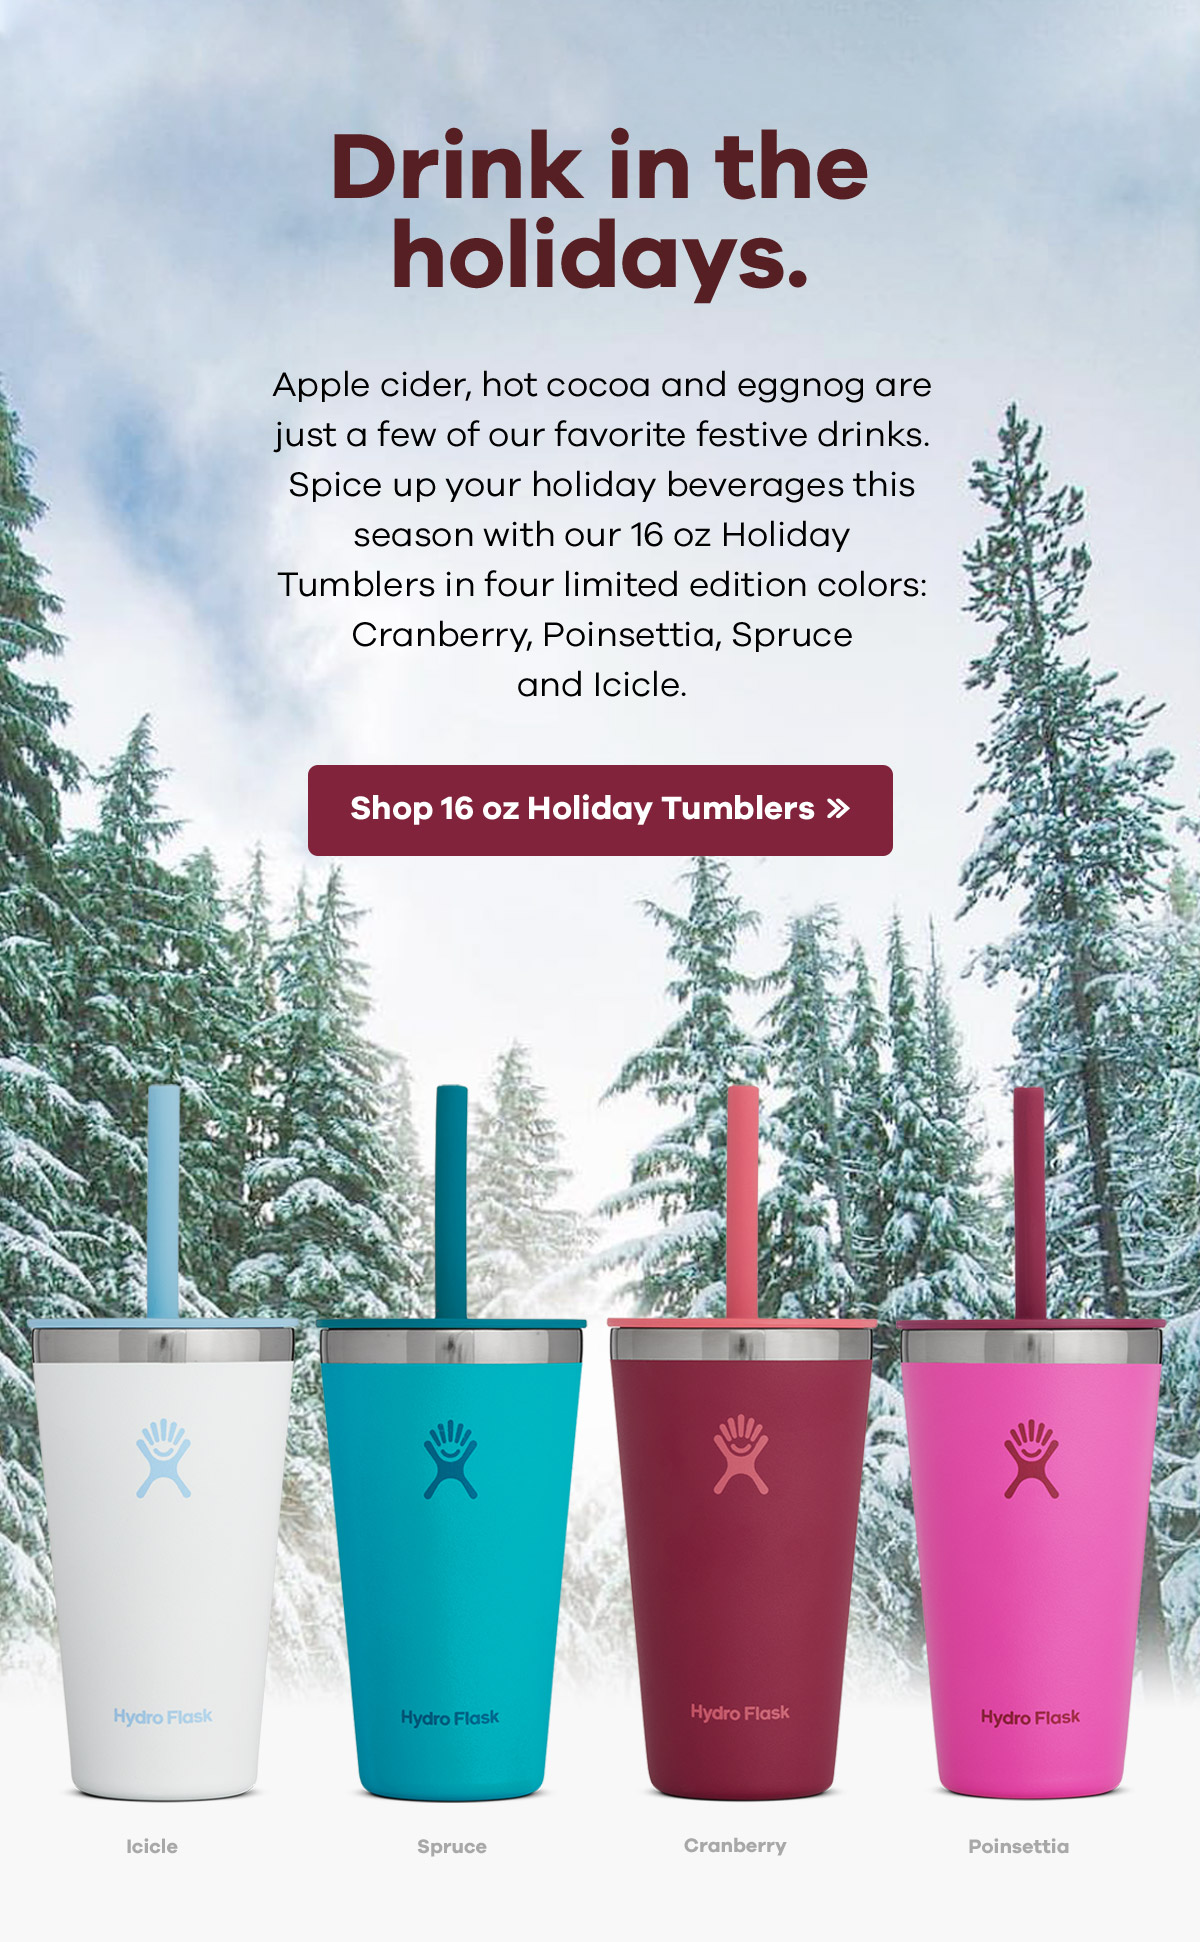 Drink in the holidays. Apple cider, hot cocoa and eggnog are just a few of our favorite festive drinks. Spice up your holiday beverages this season with our 16 oz Holiday Tumblers in four limited edition colors: Cranberry, Poinsettia, Spruce, and Icicle.| Shop 16 oz Holiday Tumblers >>